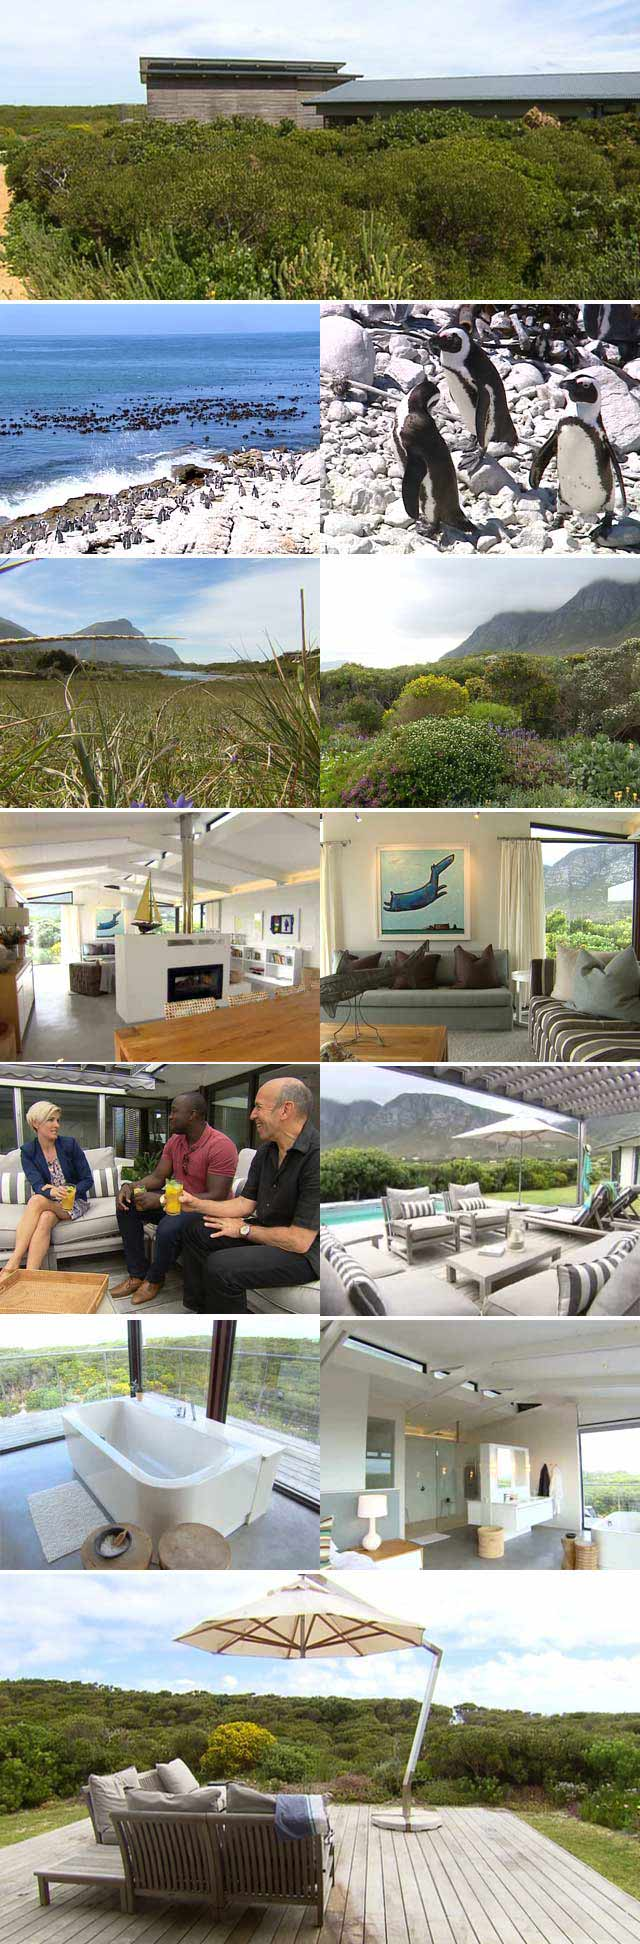 Top Billing features Bettys Bay beach house